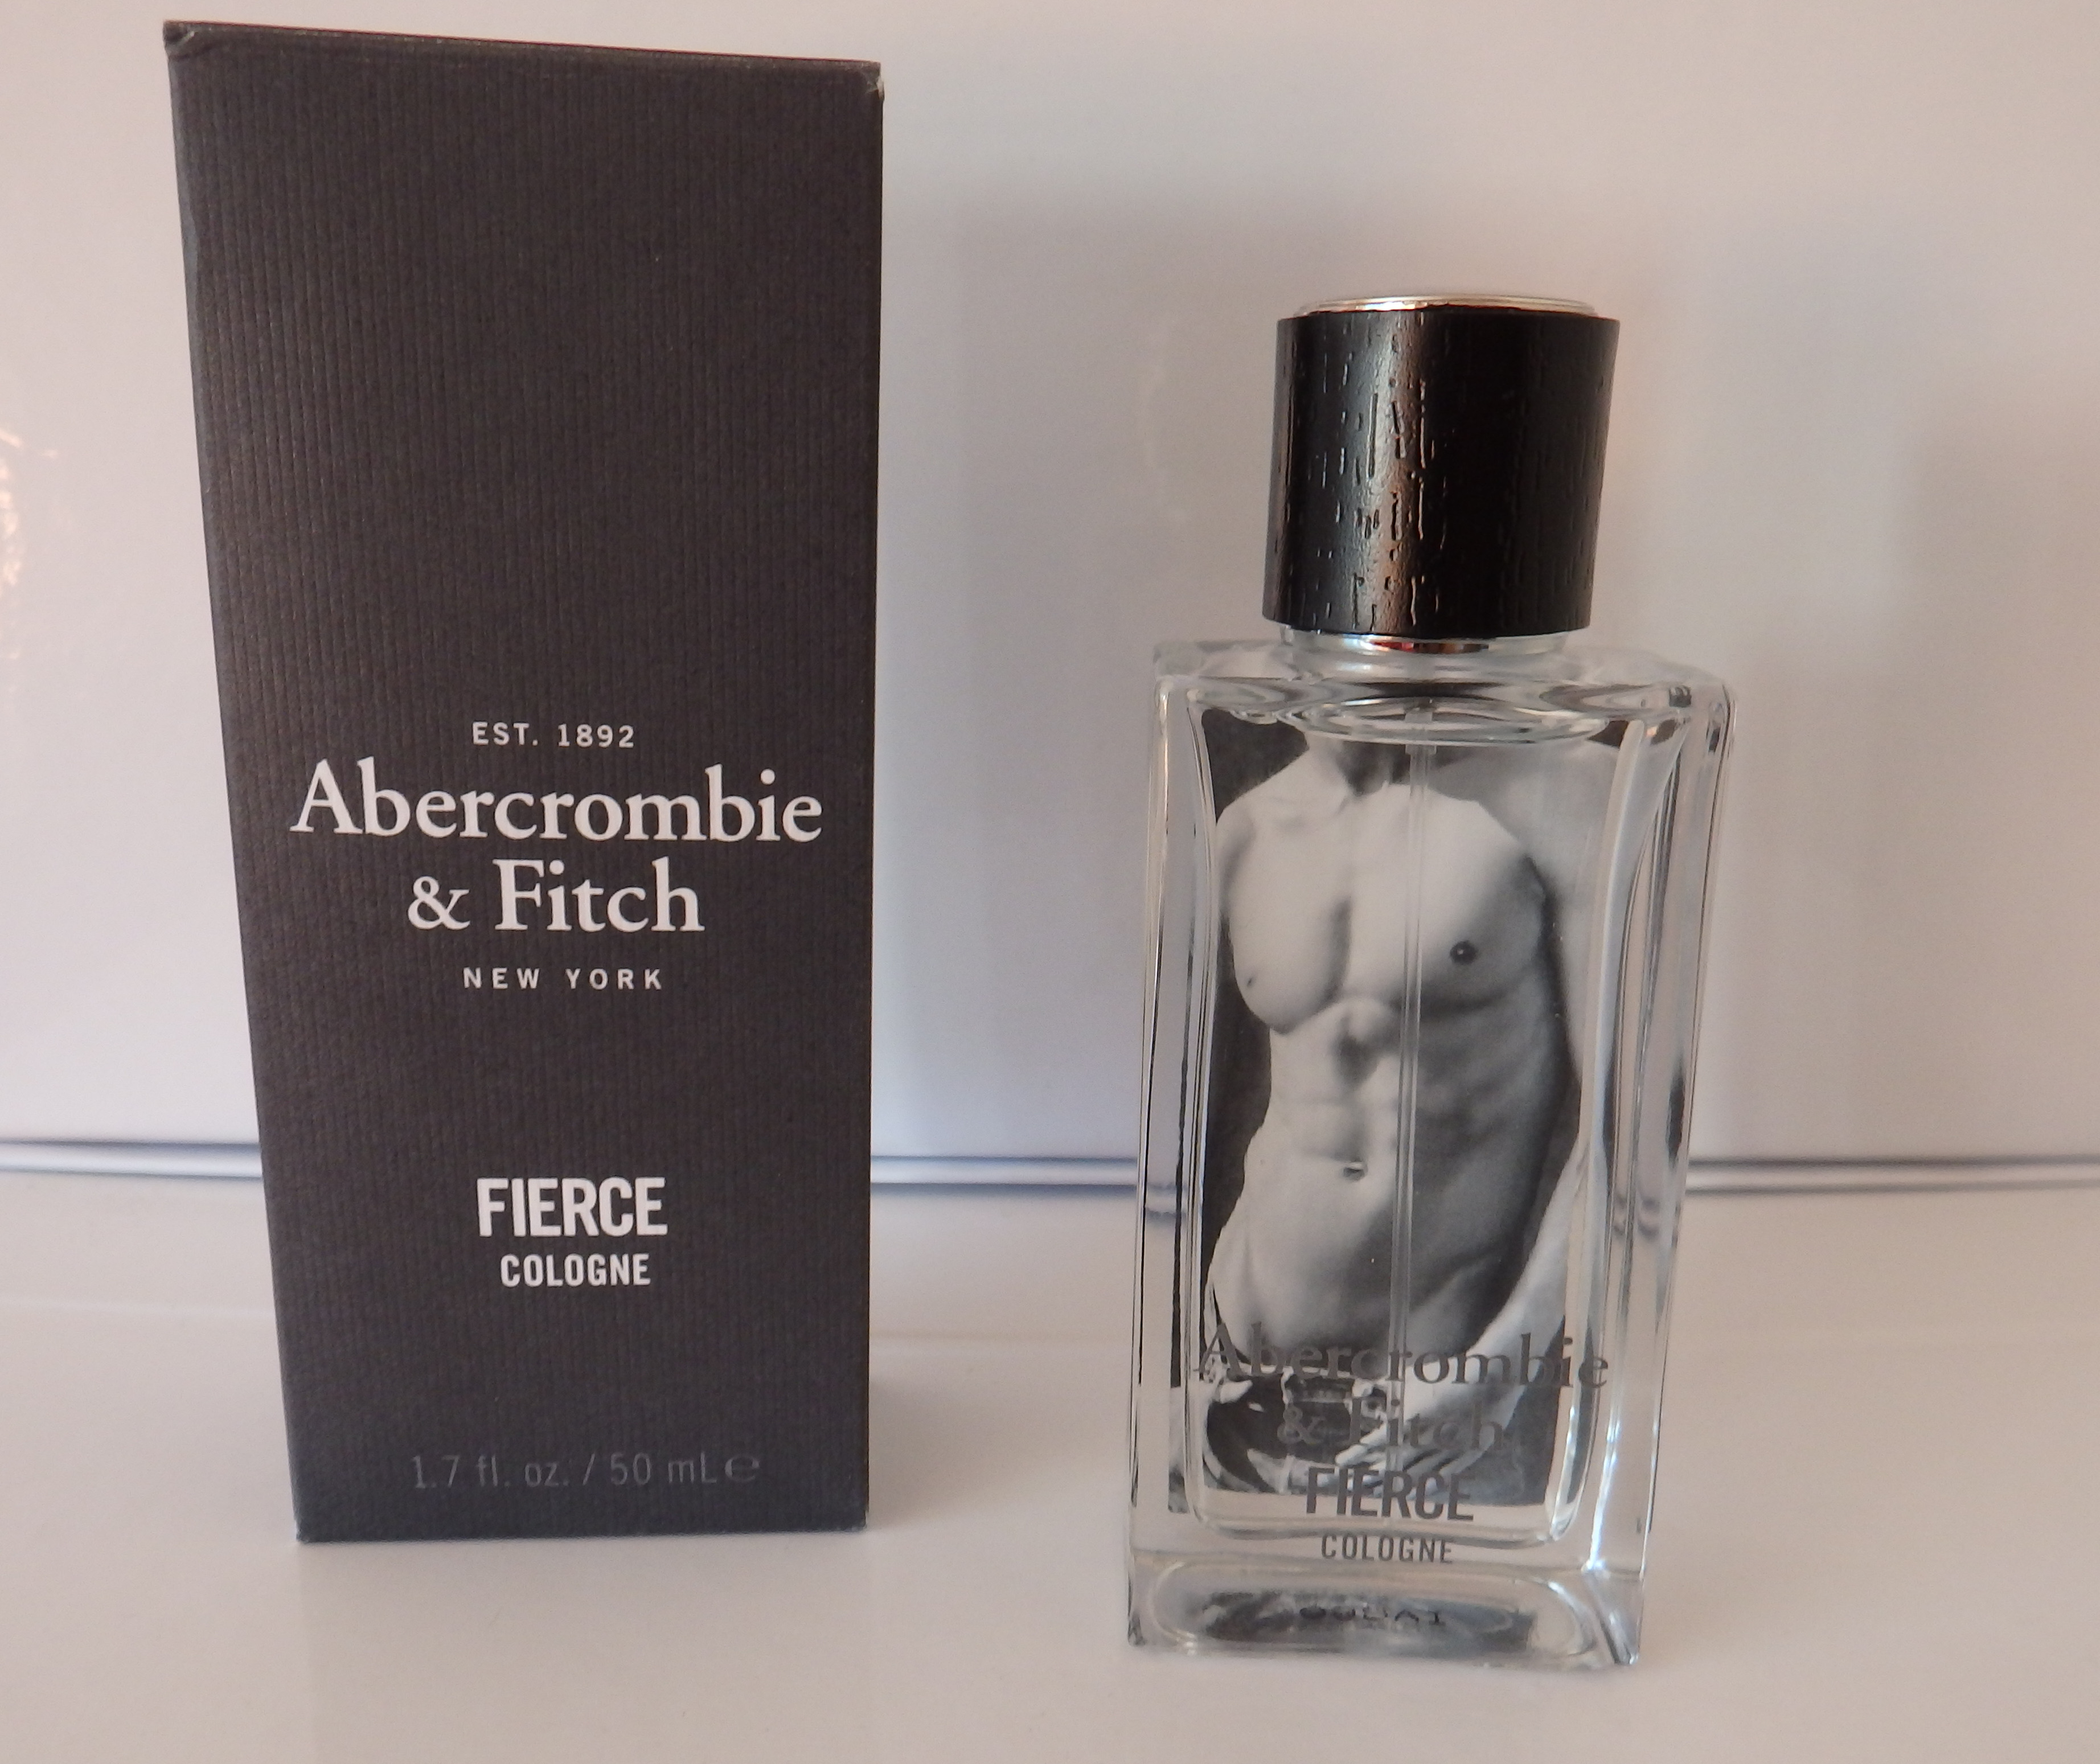 Fierce Abercrombie & Fitch